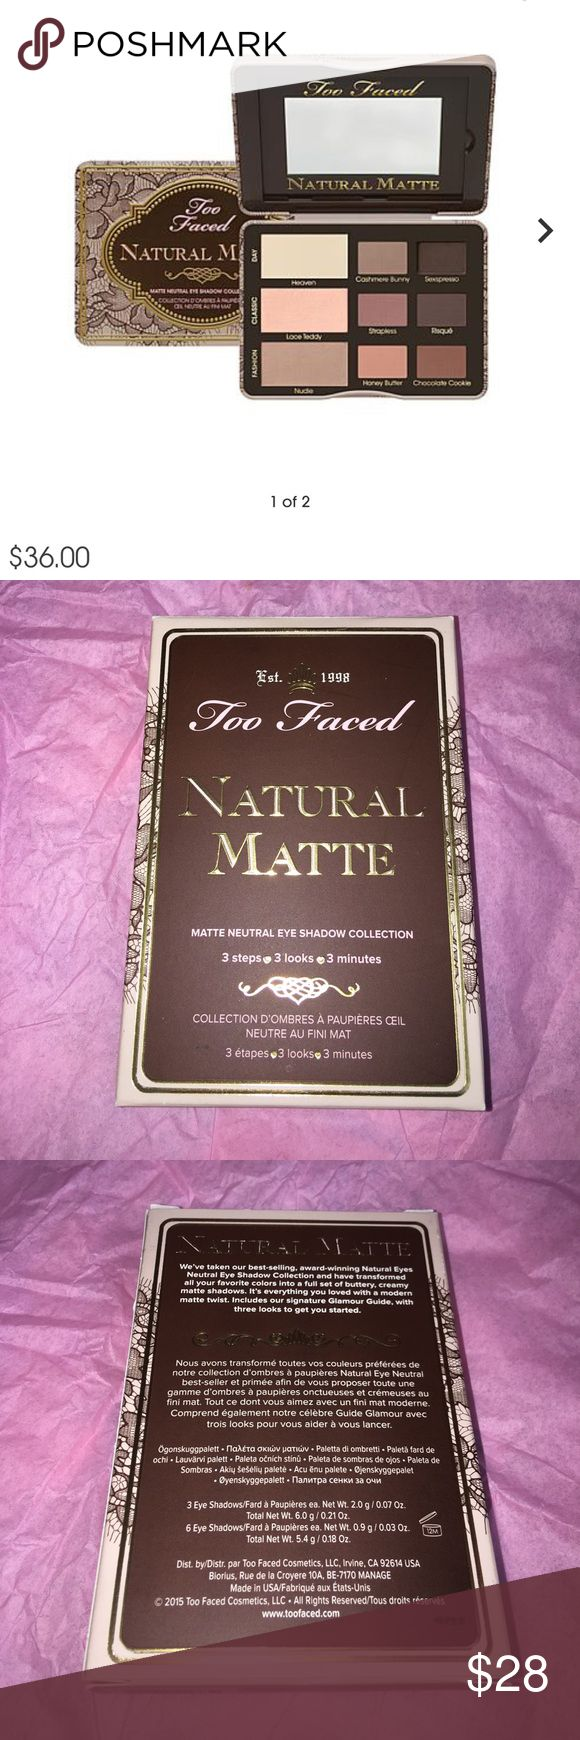 Too Faced Natural Matte EyeShadow Palette Brand New. Never Used or Swatch. NO Trade. Price Firm. This app took $20% Fee Included.  Retail: $36 + tax. Too Faced Makeup Eyeshadow